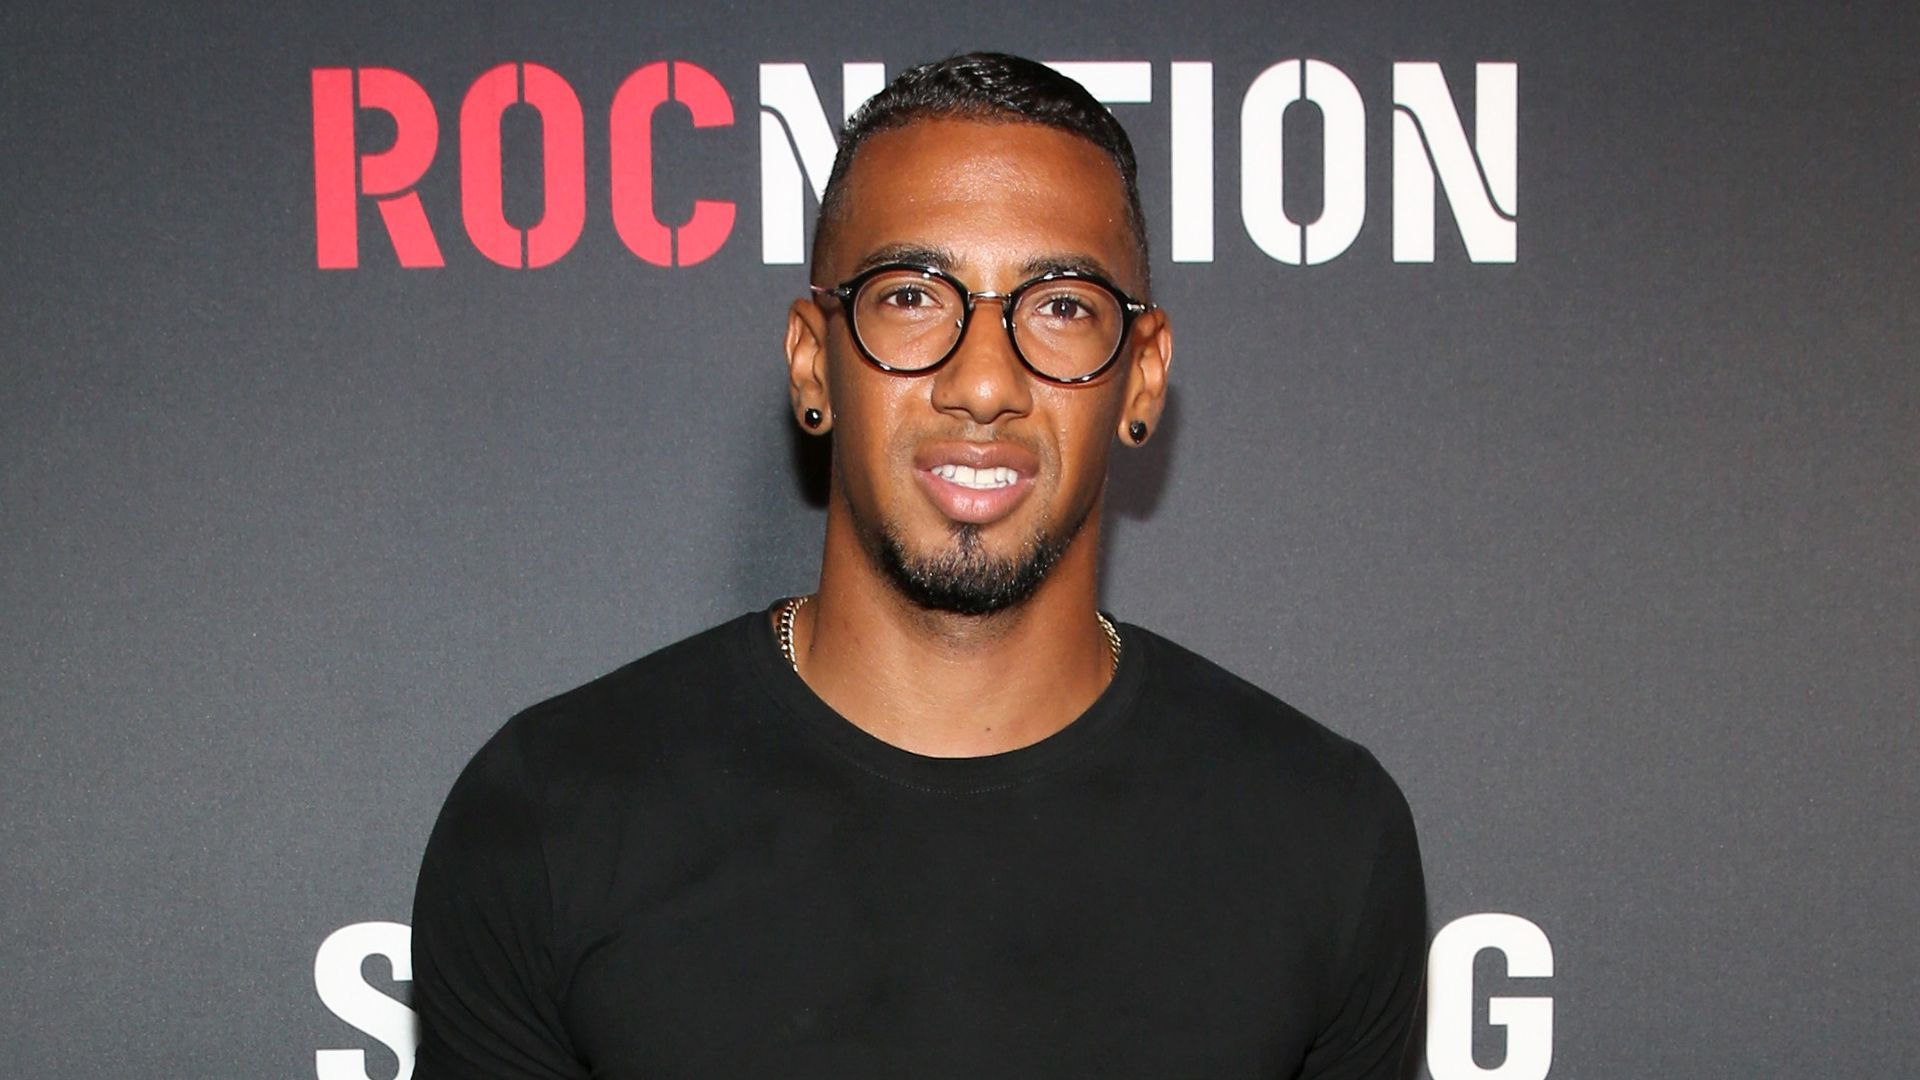 Jerome Boateng Wallpapers s Backgrounds